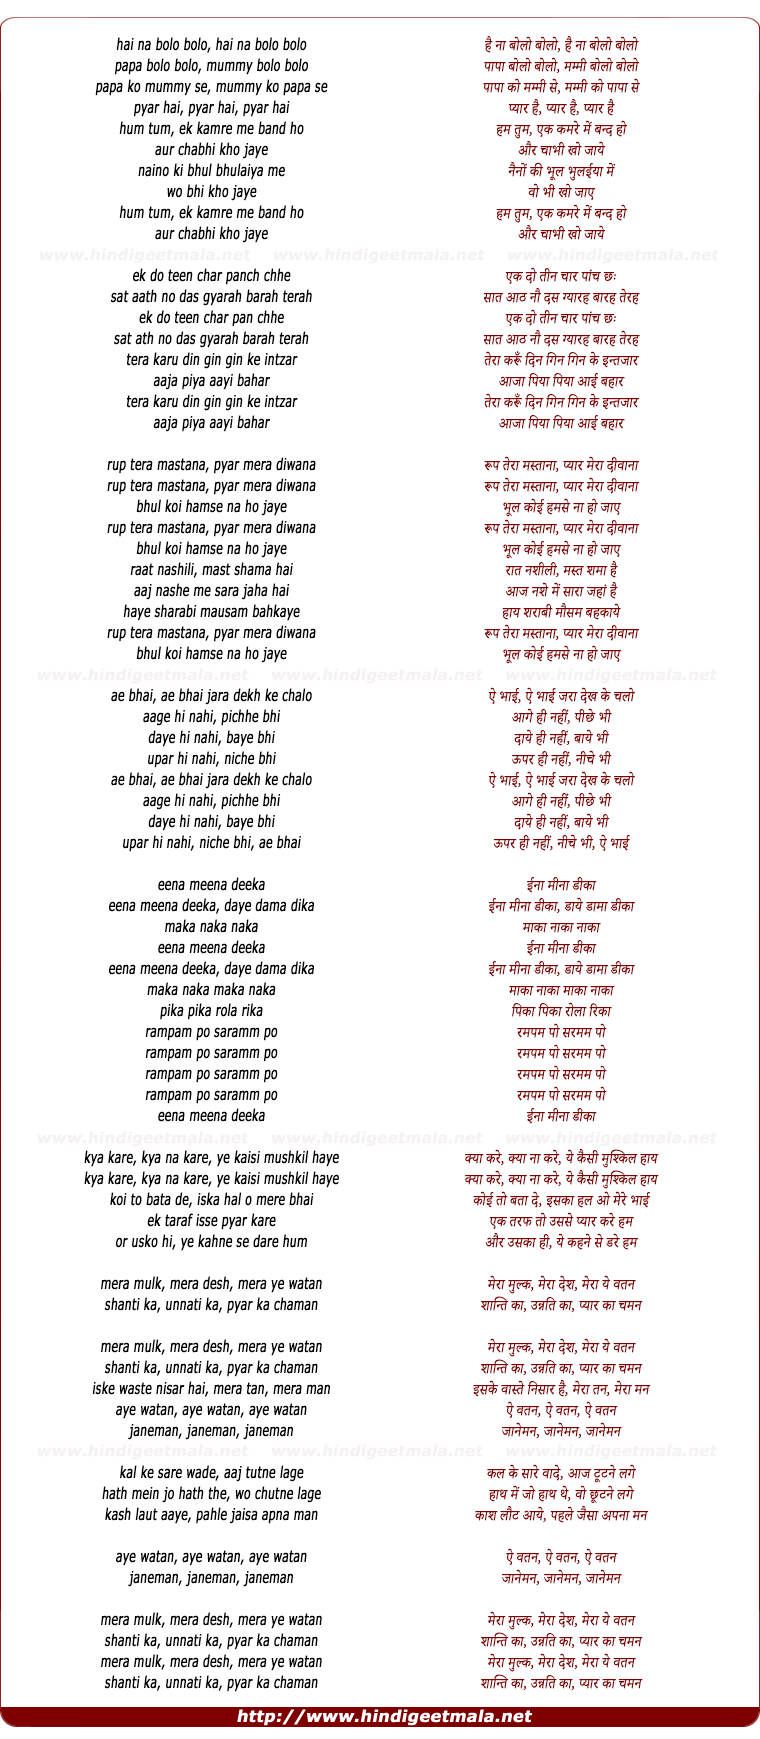 lyrics of song Mera Mulk Mera Desh (Female)